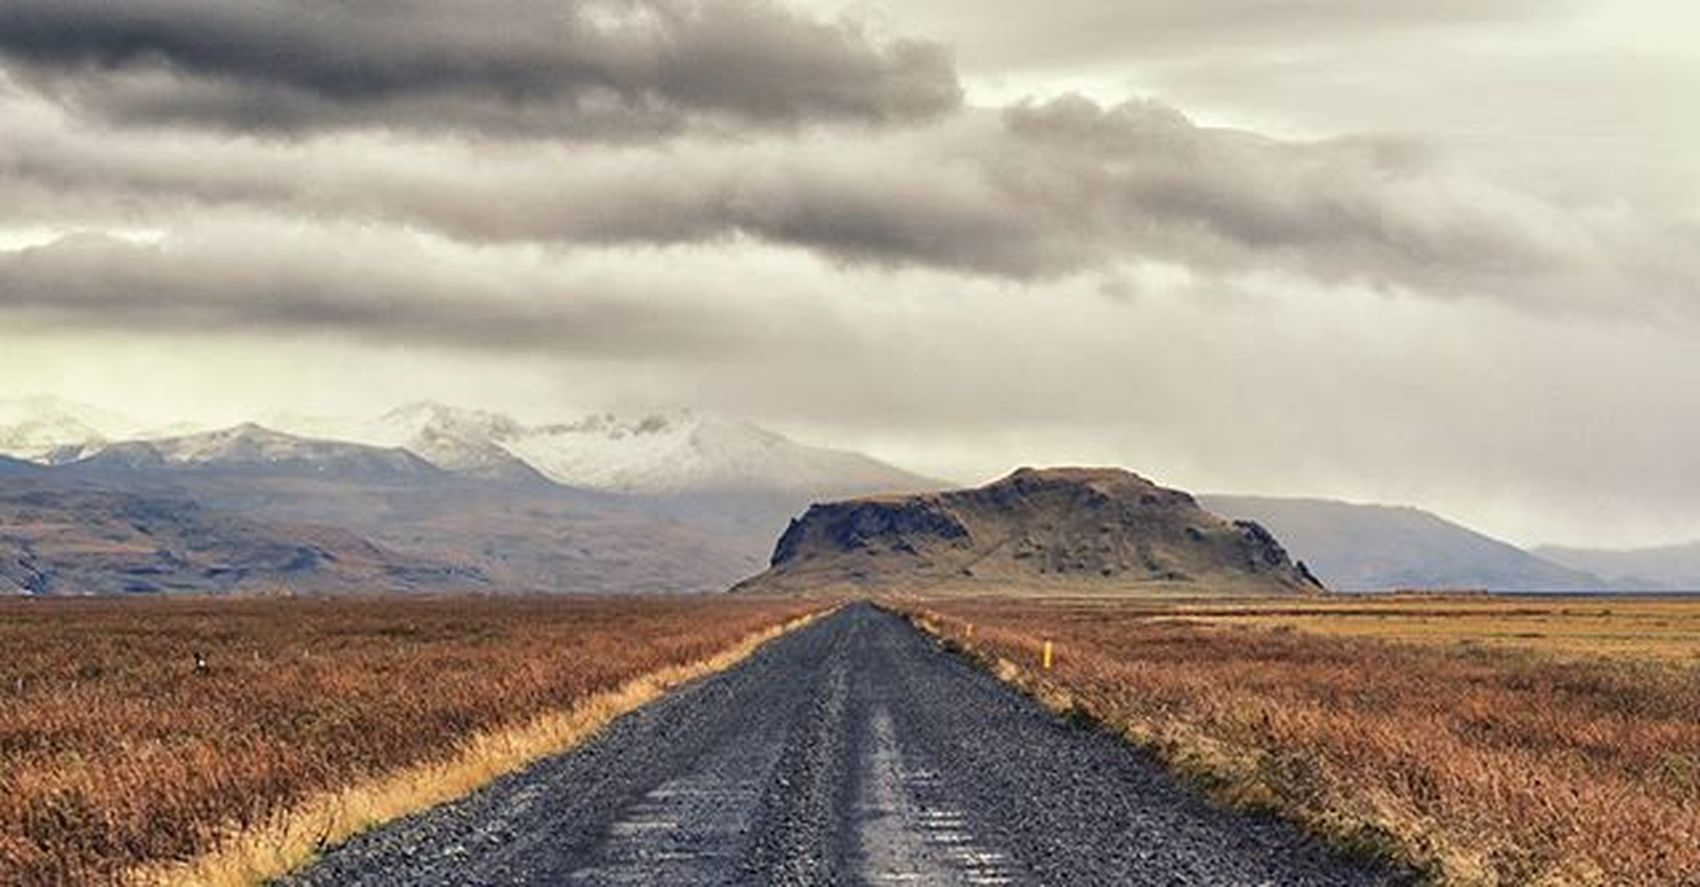 Lonelyroad Hill Mountain Iceland Fall Autumn Gravel Travel Stori